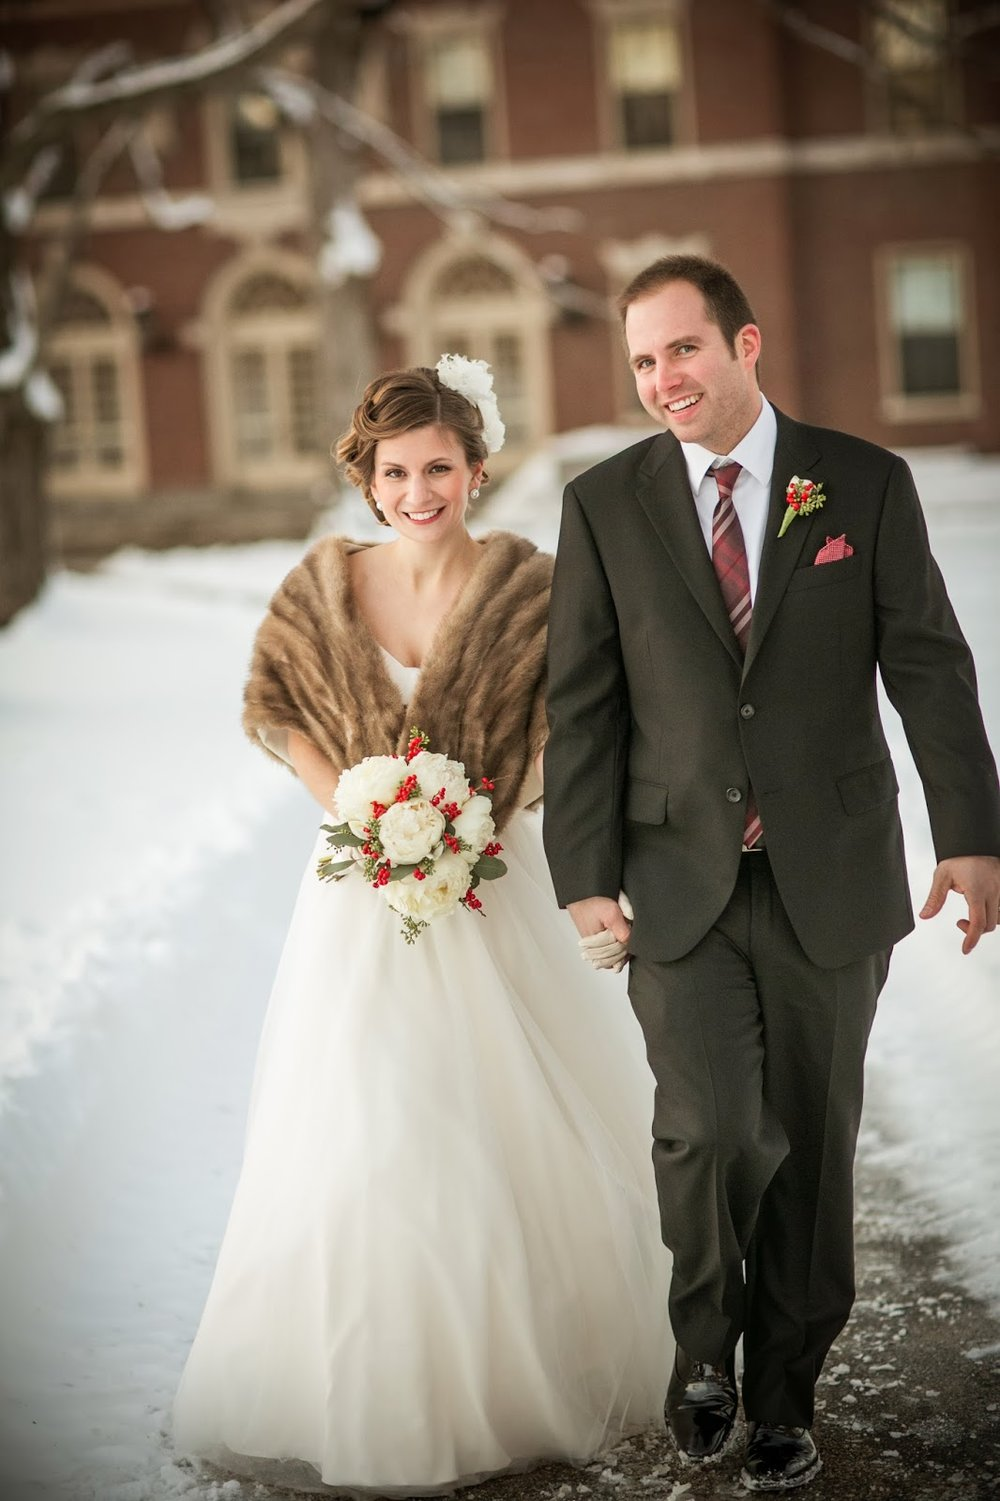 winter wedding : zev fisher photography : les fleurs : winter wedding in new england : mink shrug : white peonies, red ilex berries & seeded eucalyptus